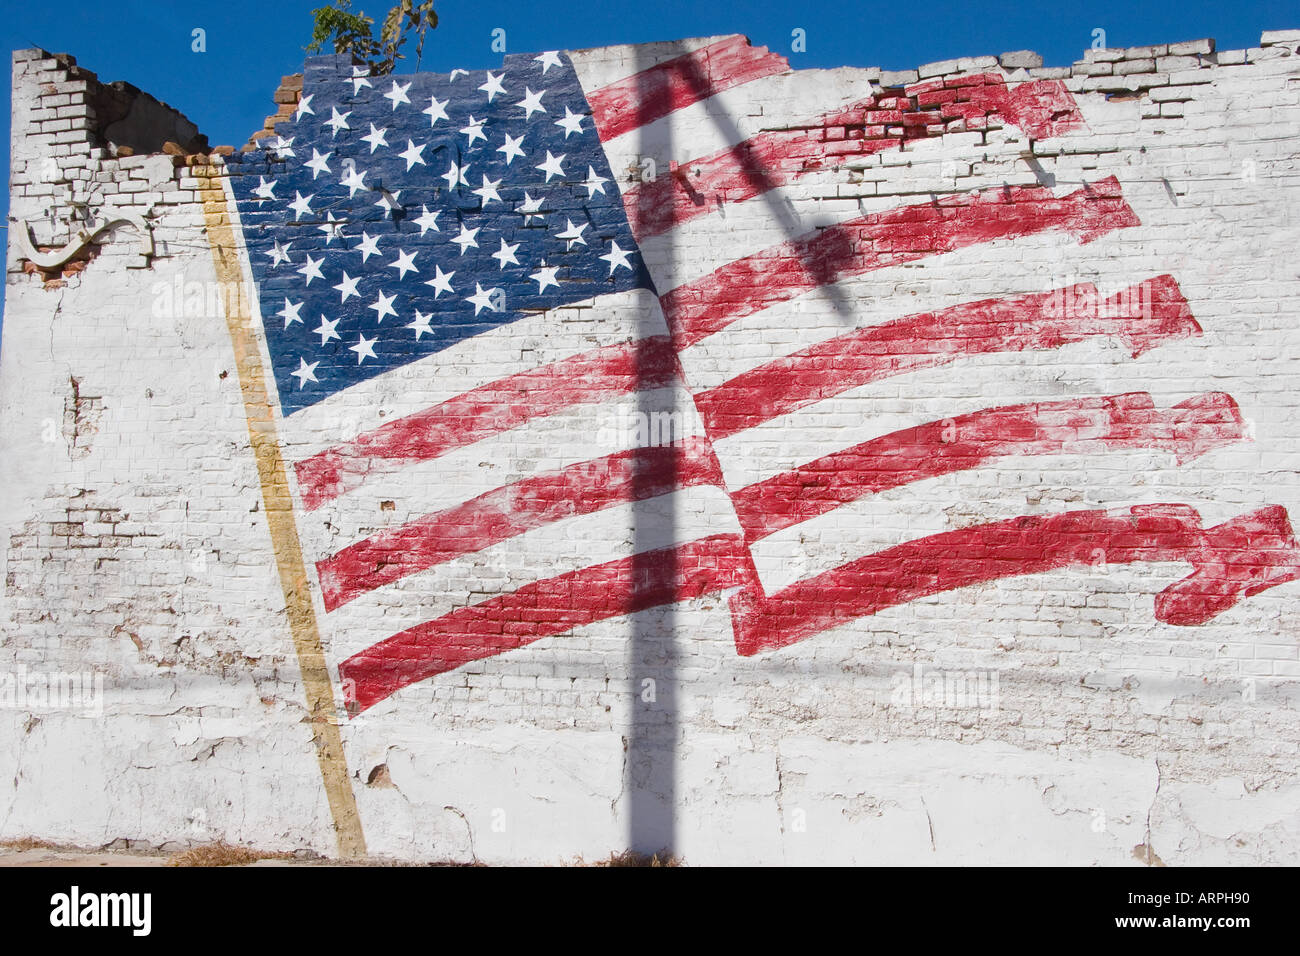 Faded Painted American Flag on a Crumbling Building, Calvert, Texas Stock Photo